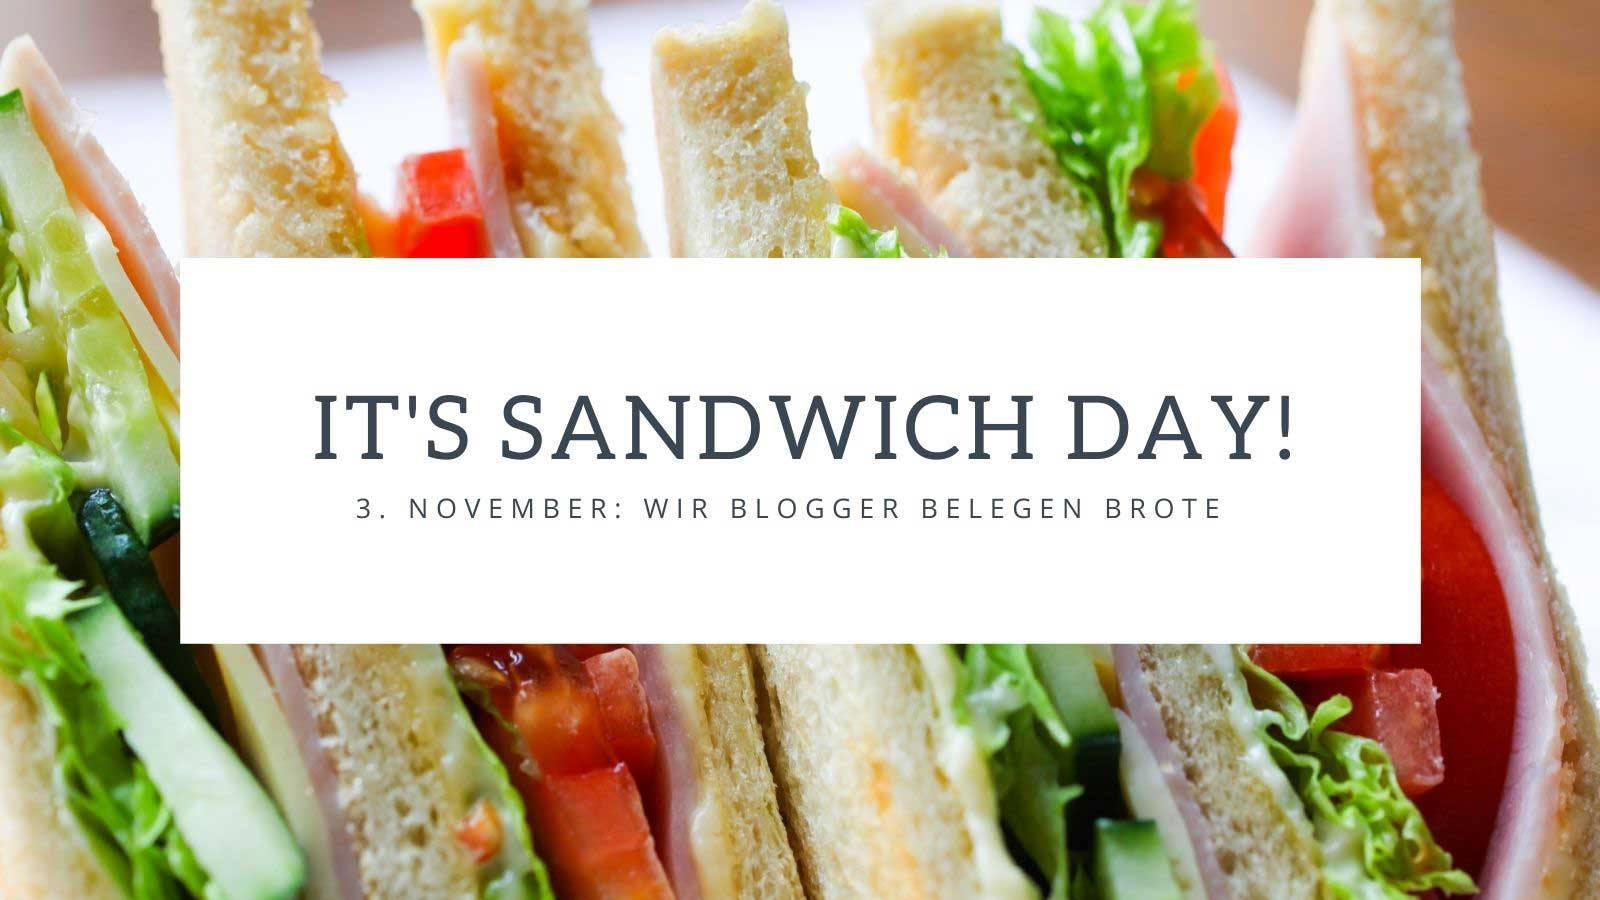 Sandwich Day Blogger Brote November